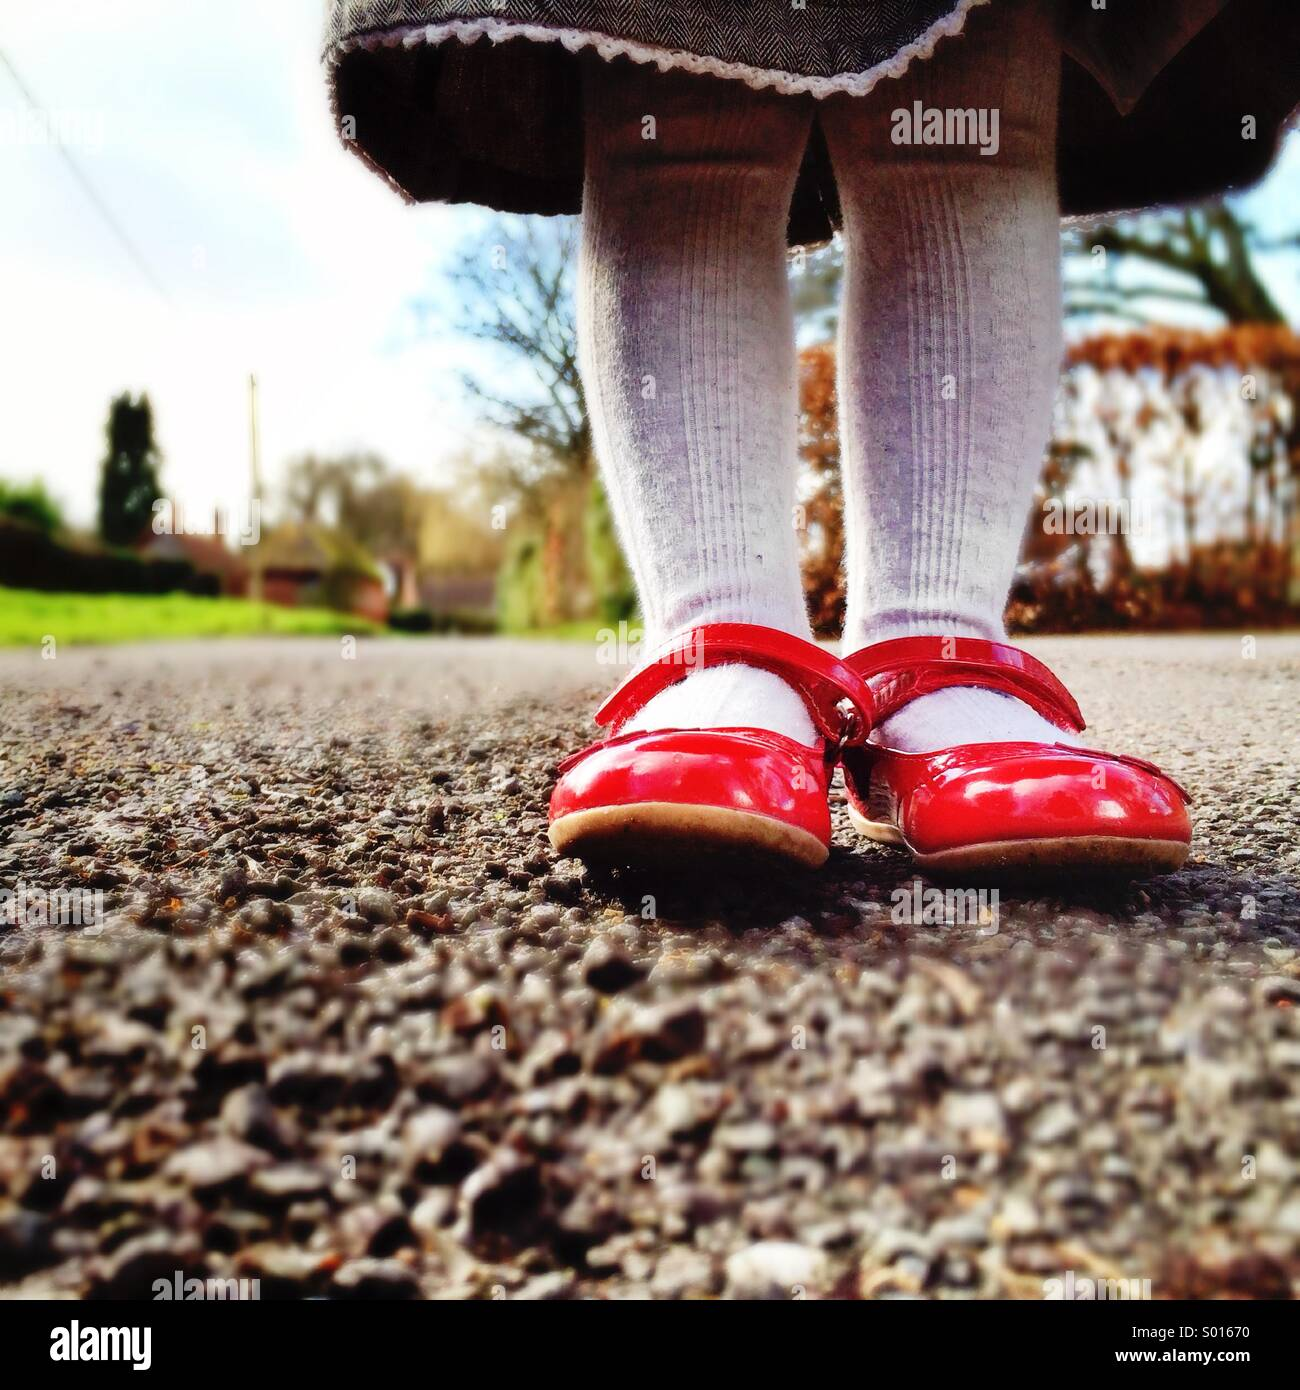 Girl in red shoes - Stock Image